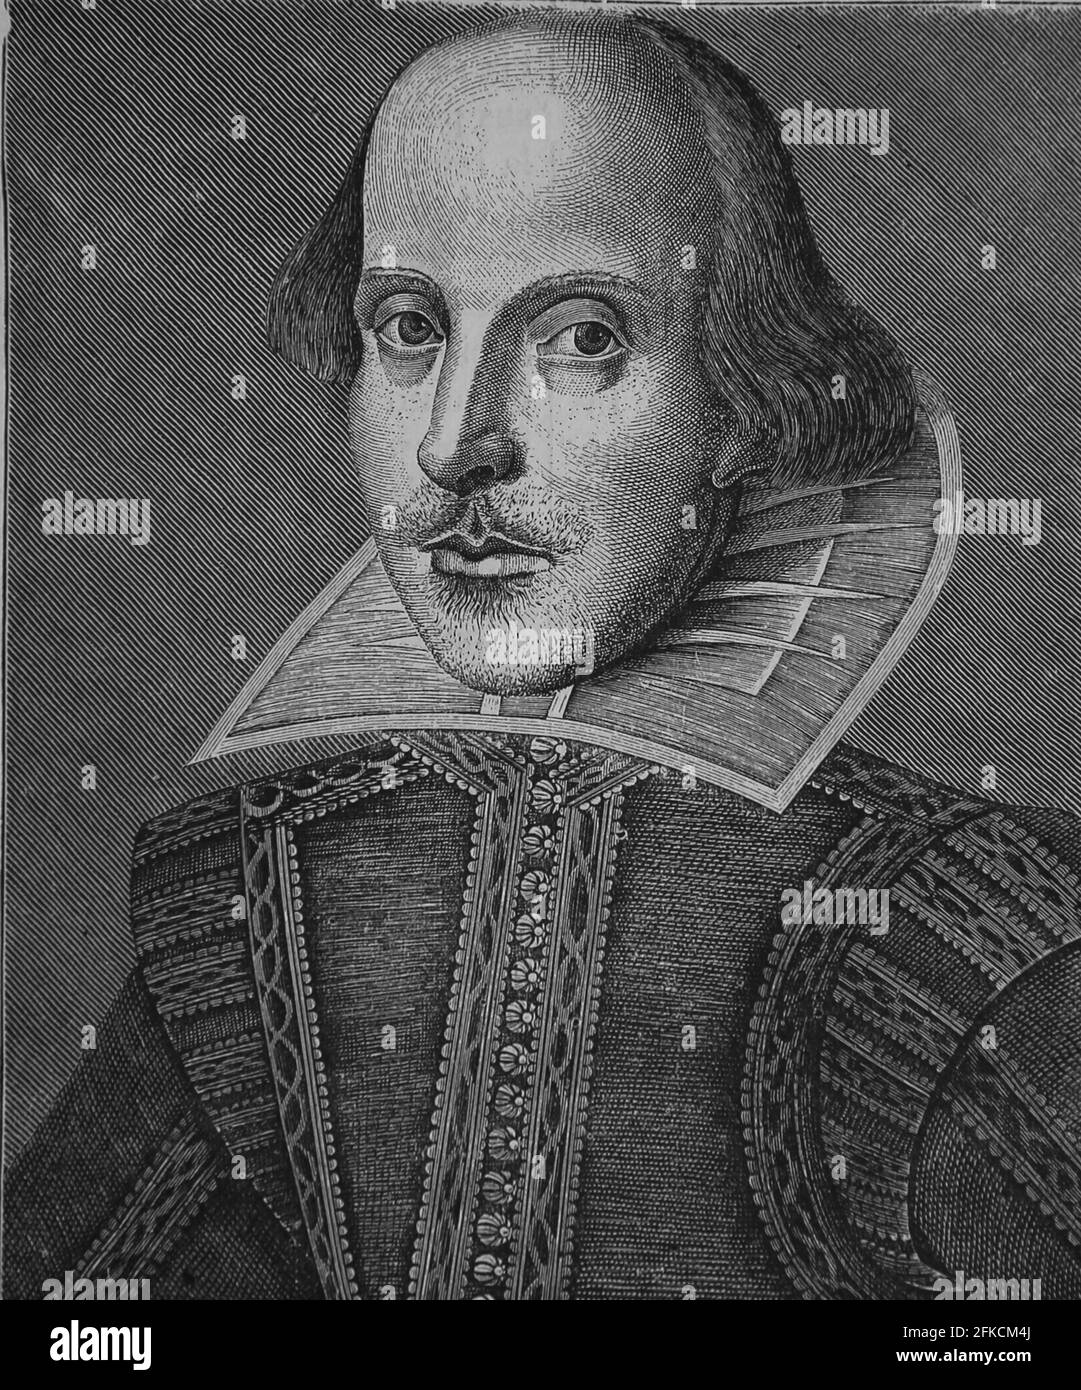 William Shakespeare (1564-1616). English writer. Facsimile of a copper engraving by Martin Drocsbont, 1623. Universal History, 1884 Stock Photo